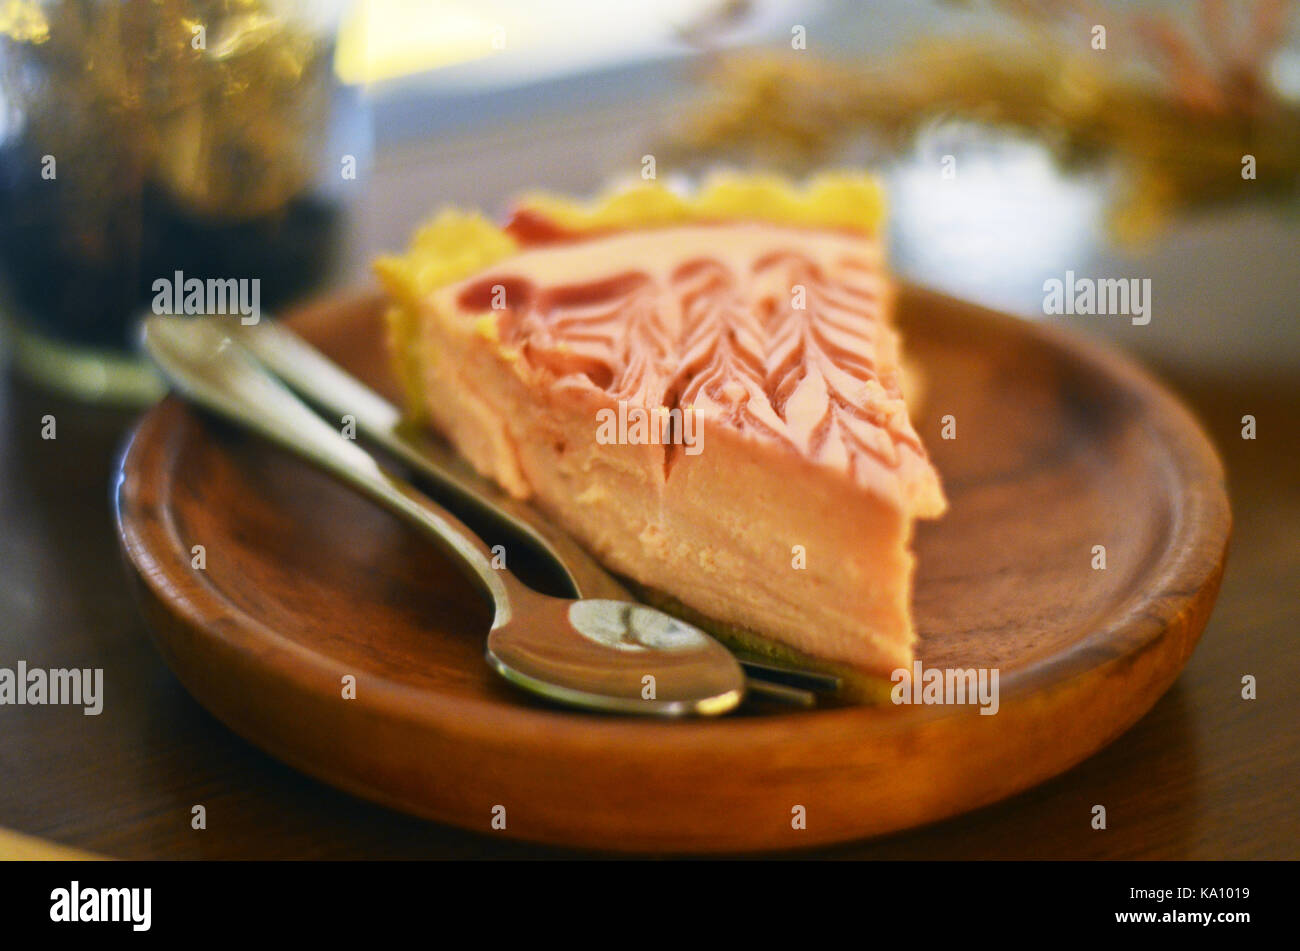 A pie is a baked dish which is usually made of a pastry dough casing covers or completely contains a filling of - Stock Image